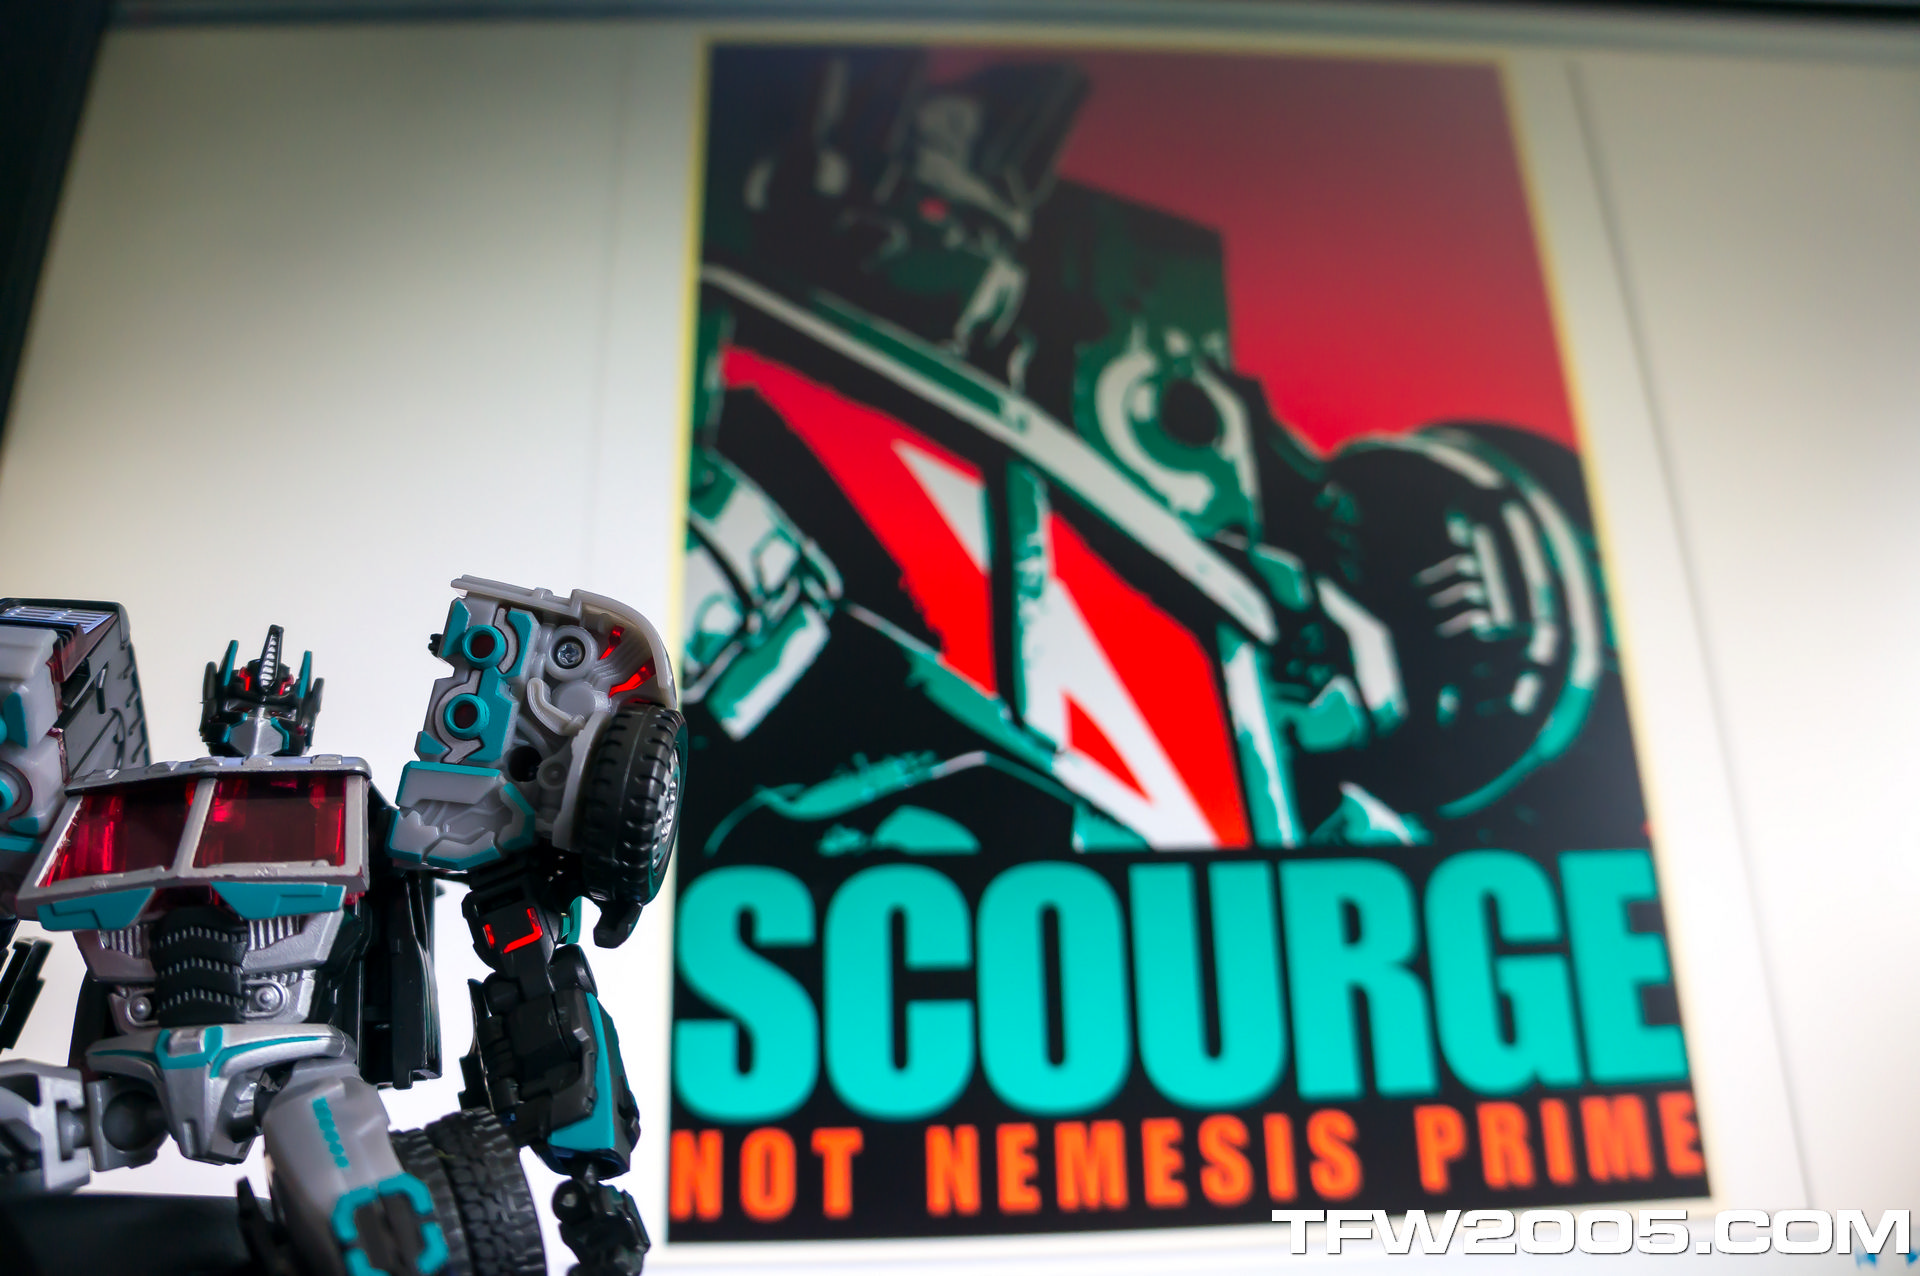 TFCC Scourge 59